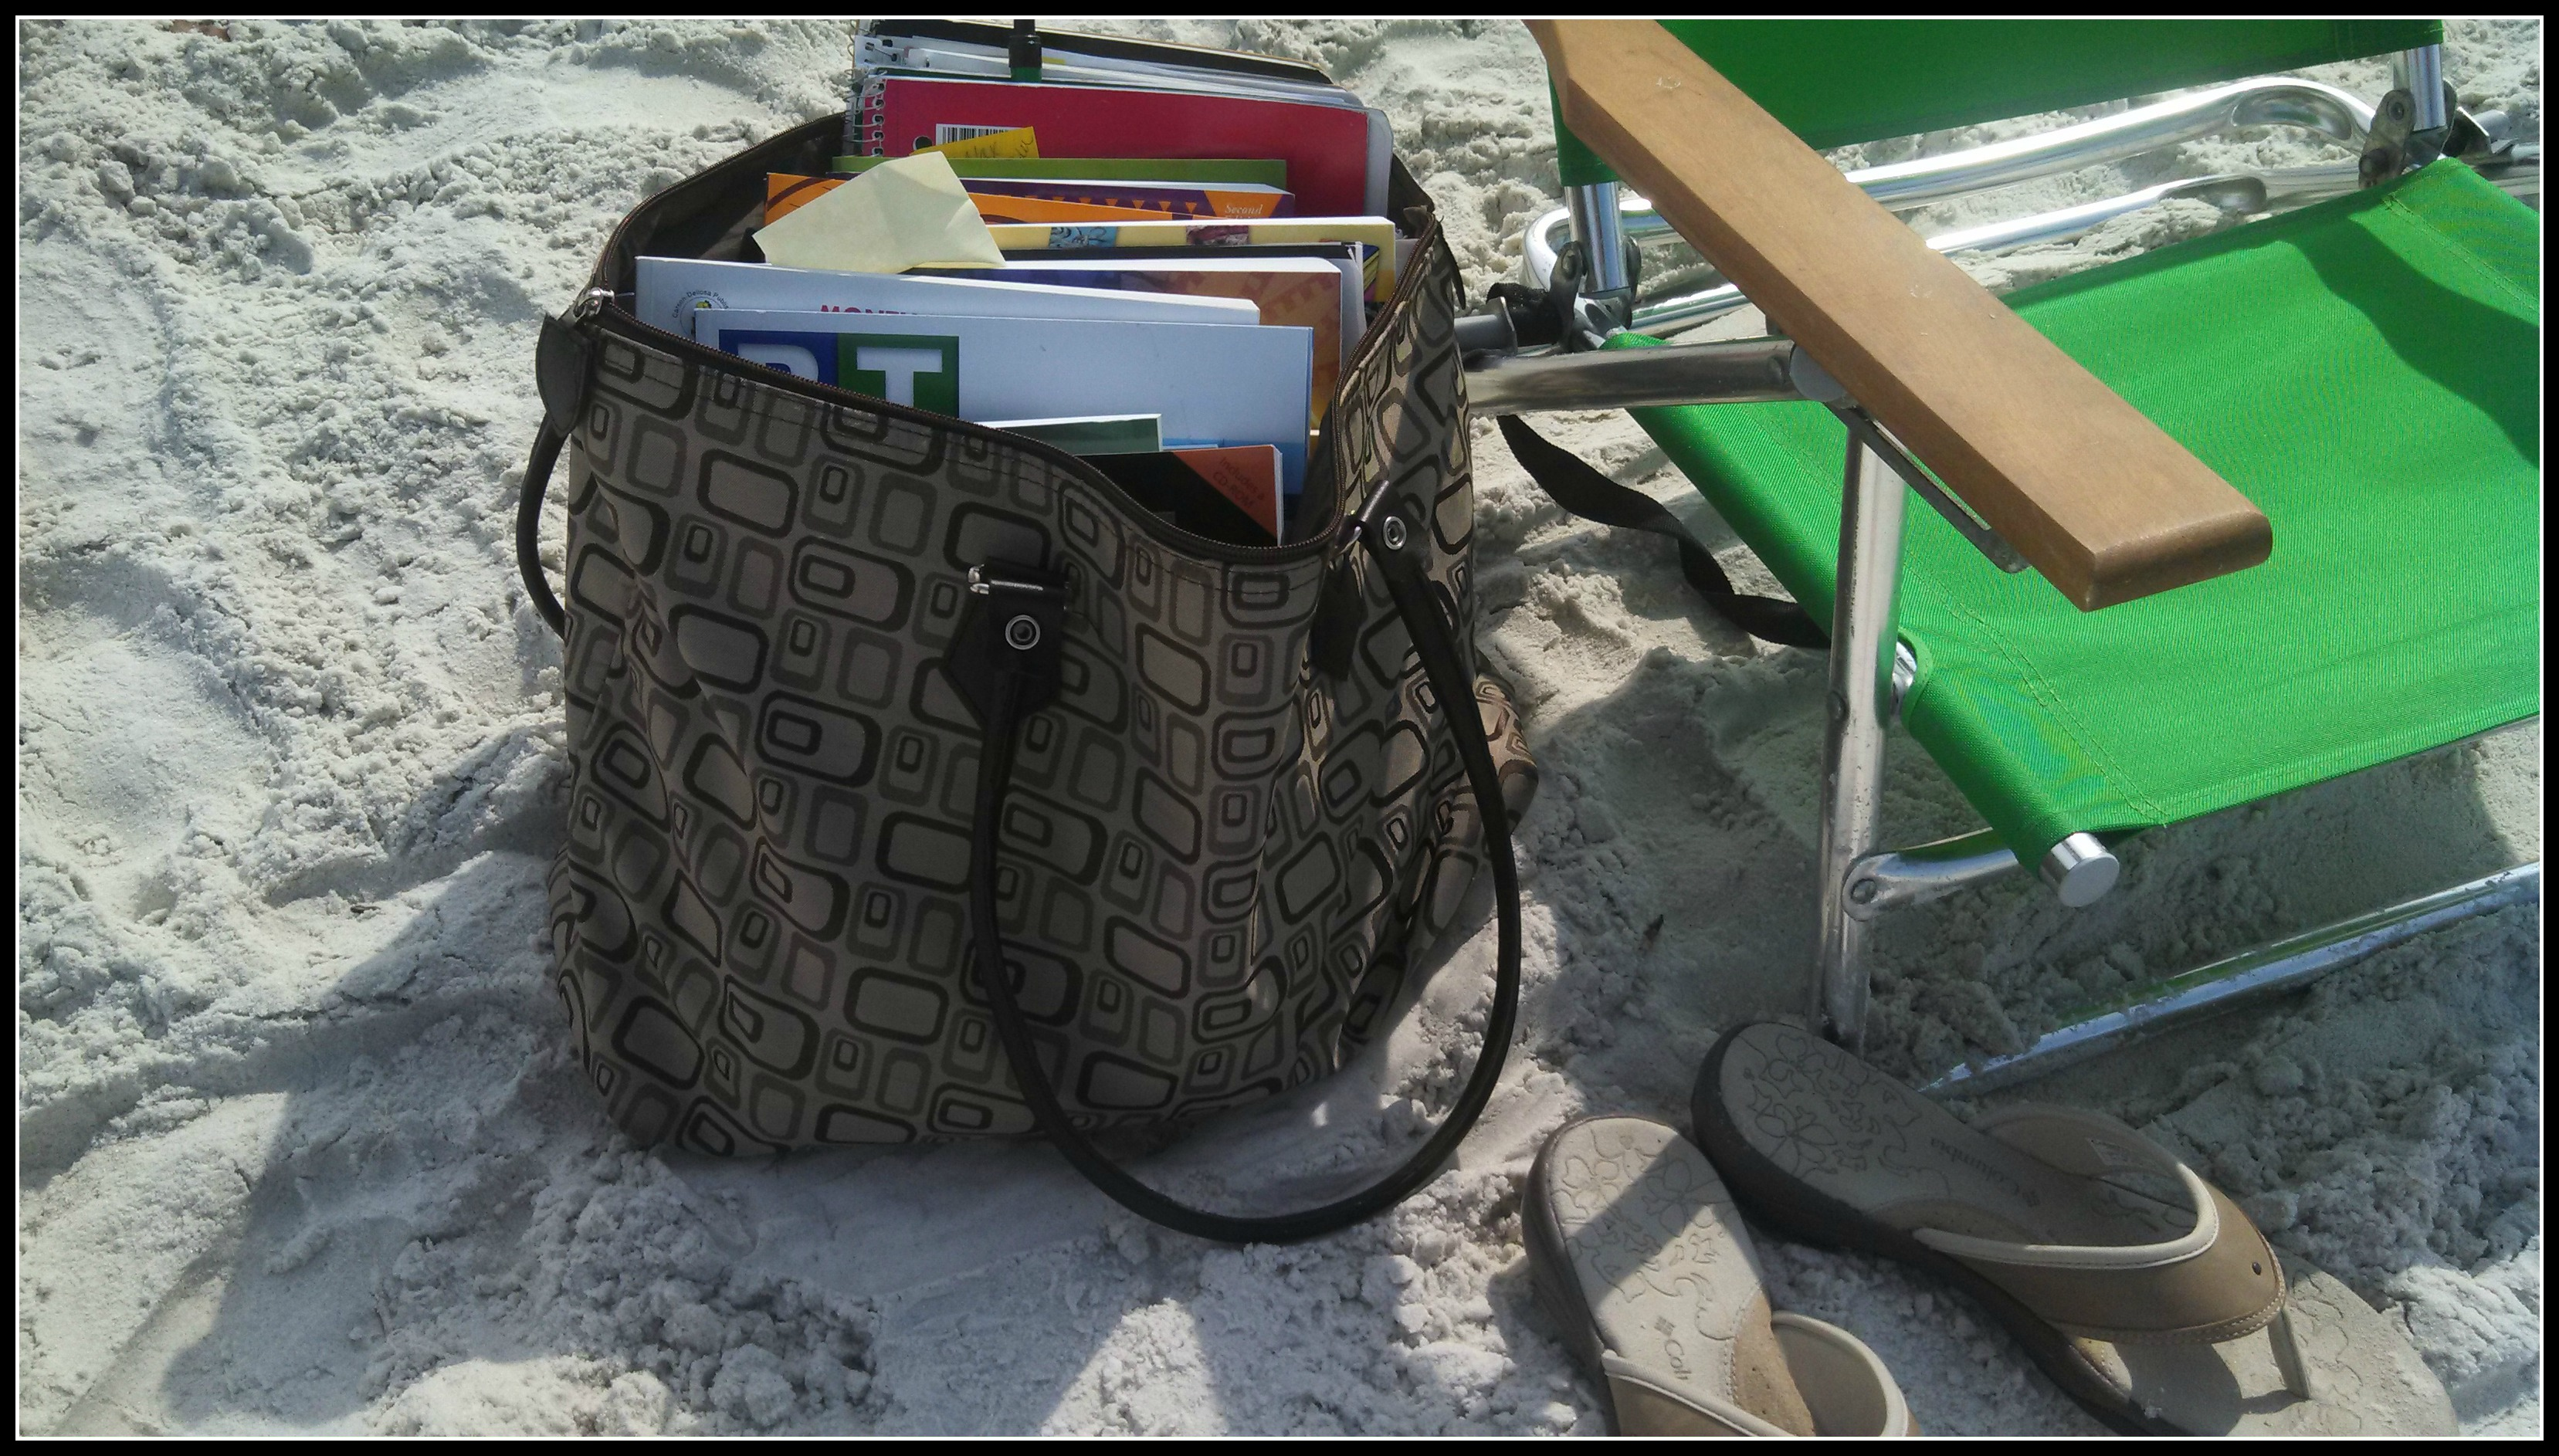 Beach readingblogpic